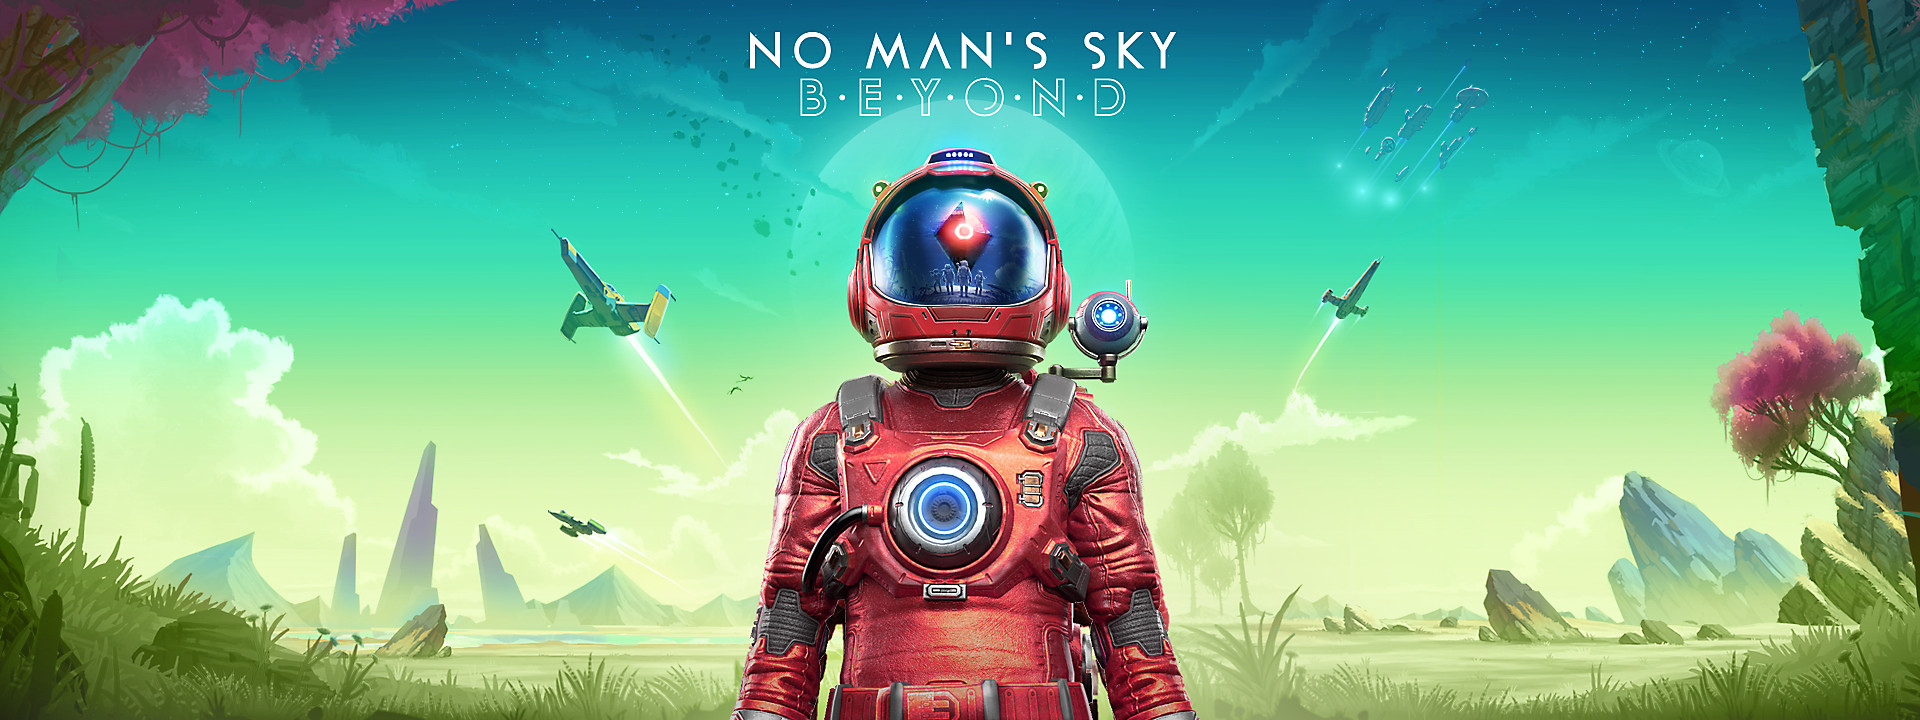 No Man's Sky - BEYOND Update and PS VR Mode Now Available